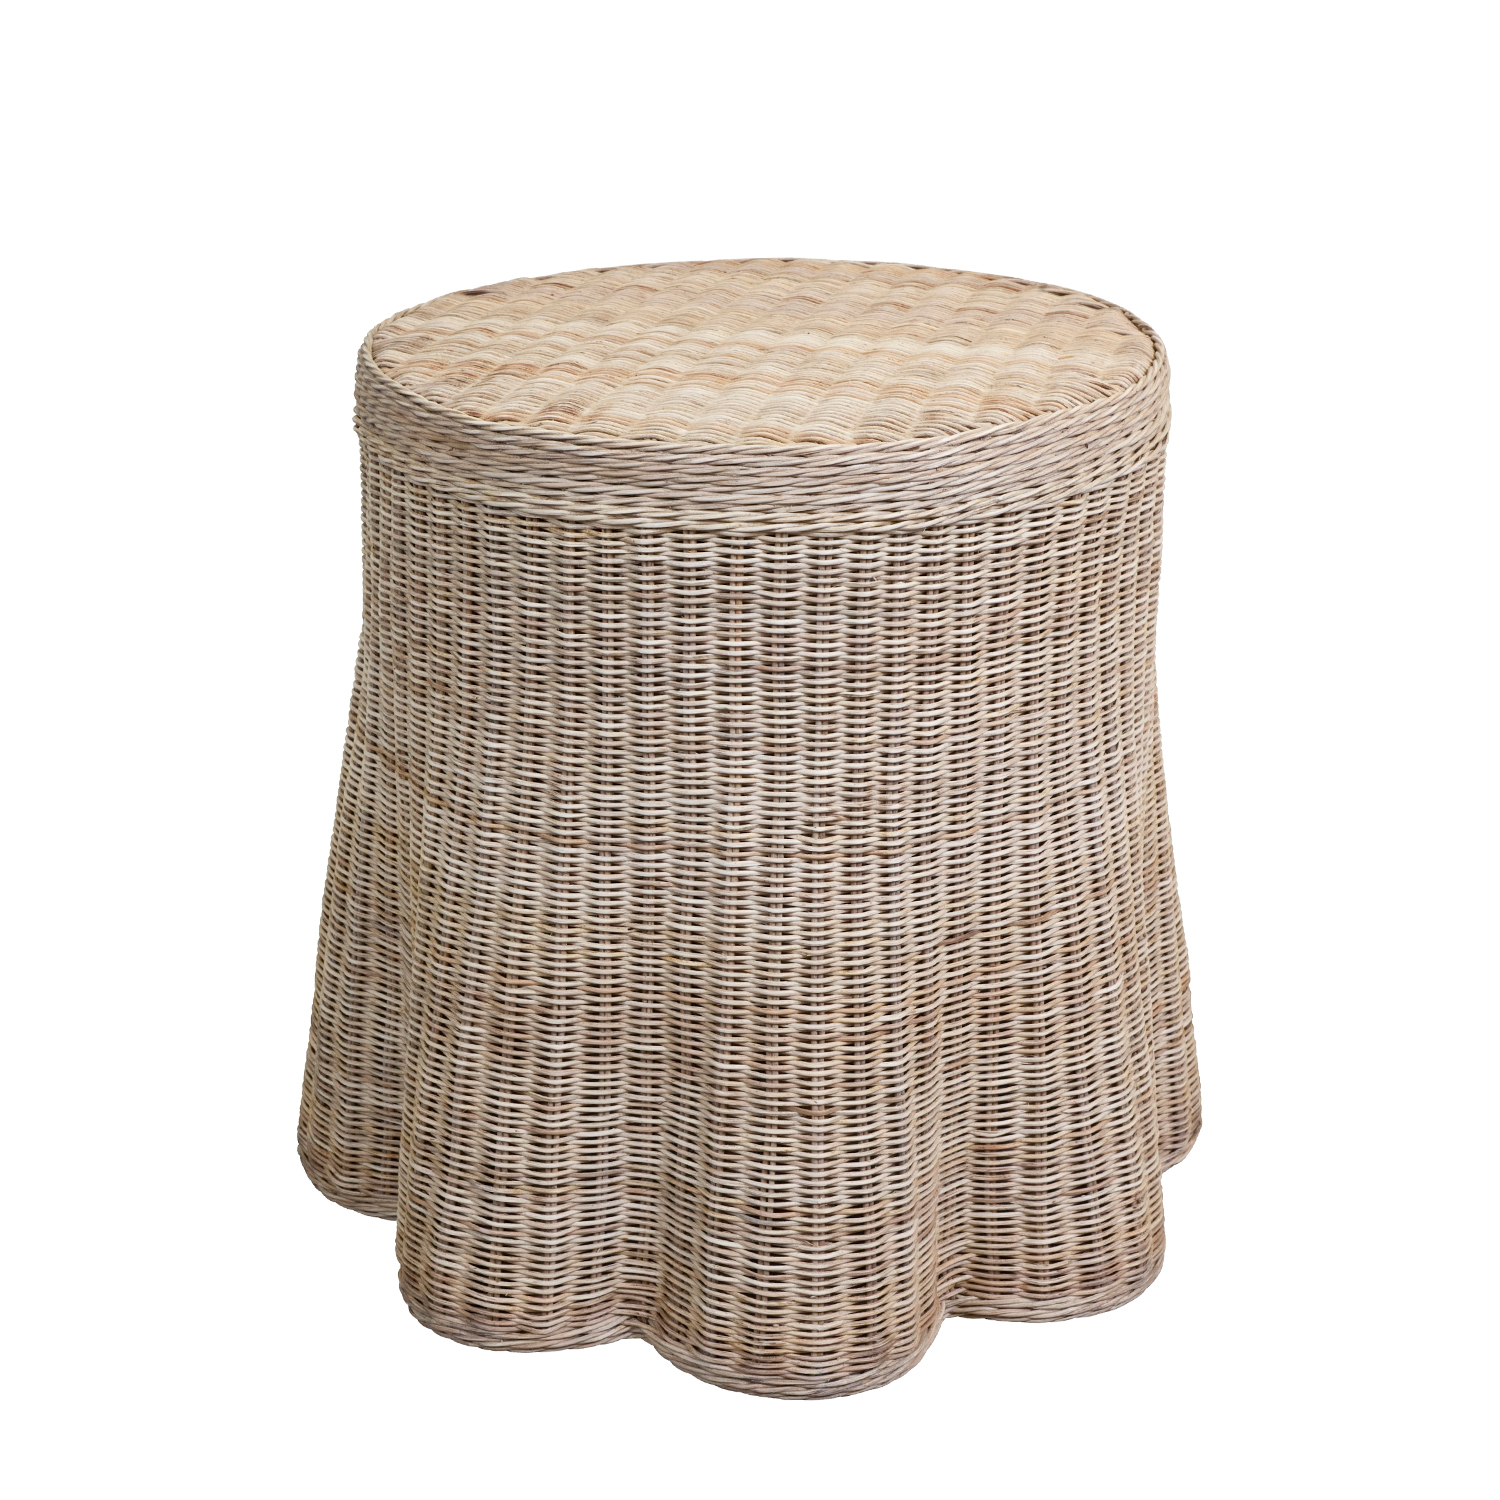 Harbour-Island-Wicker-Side-Table.jpg